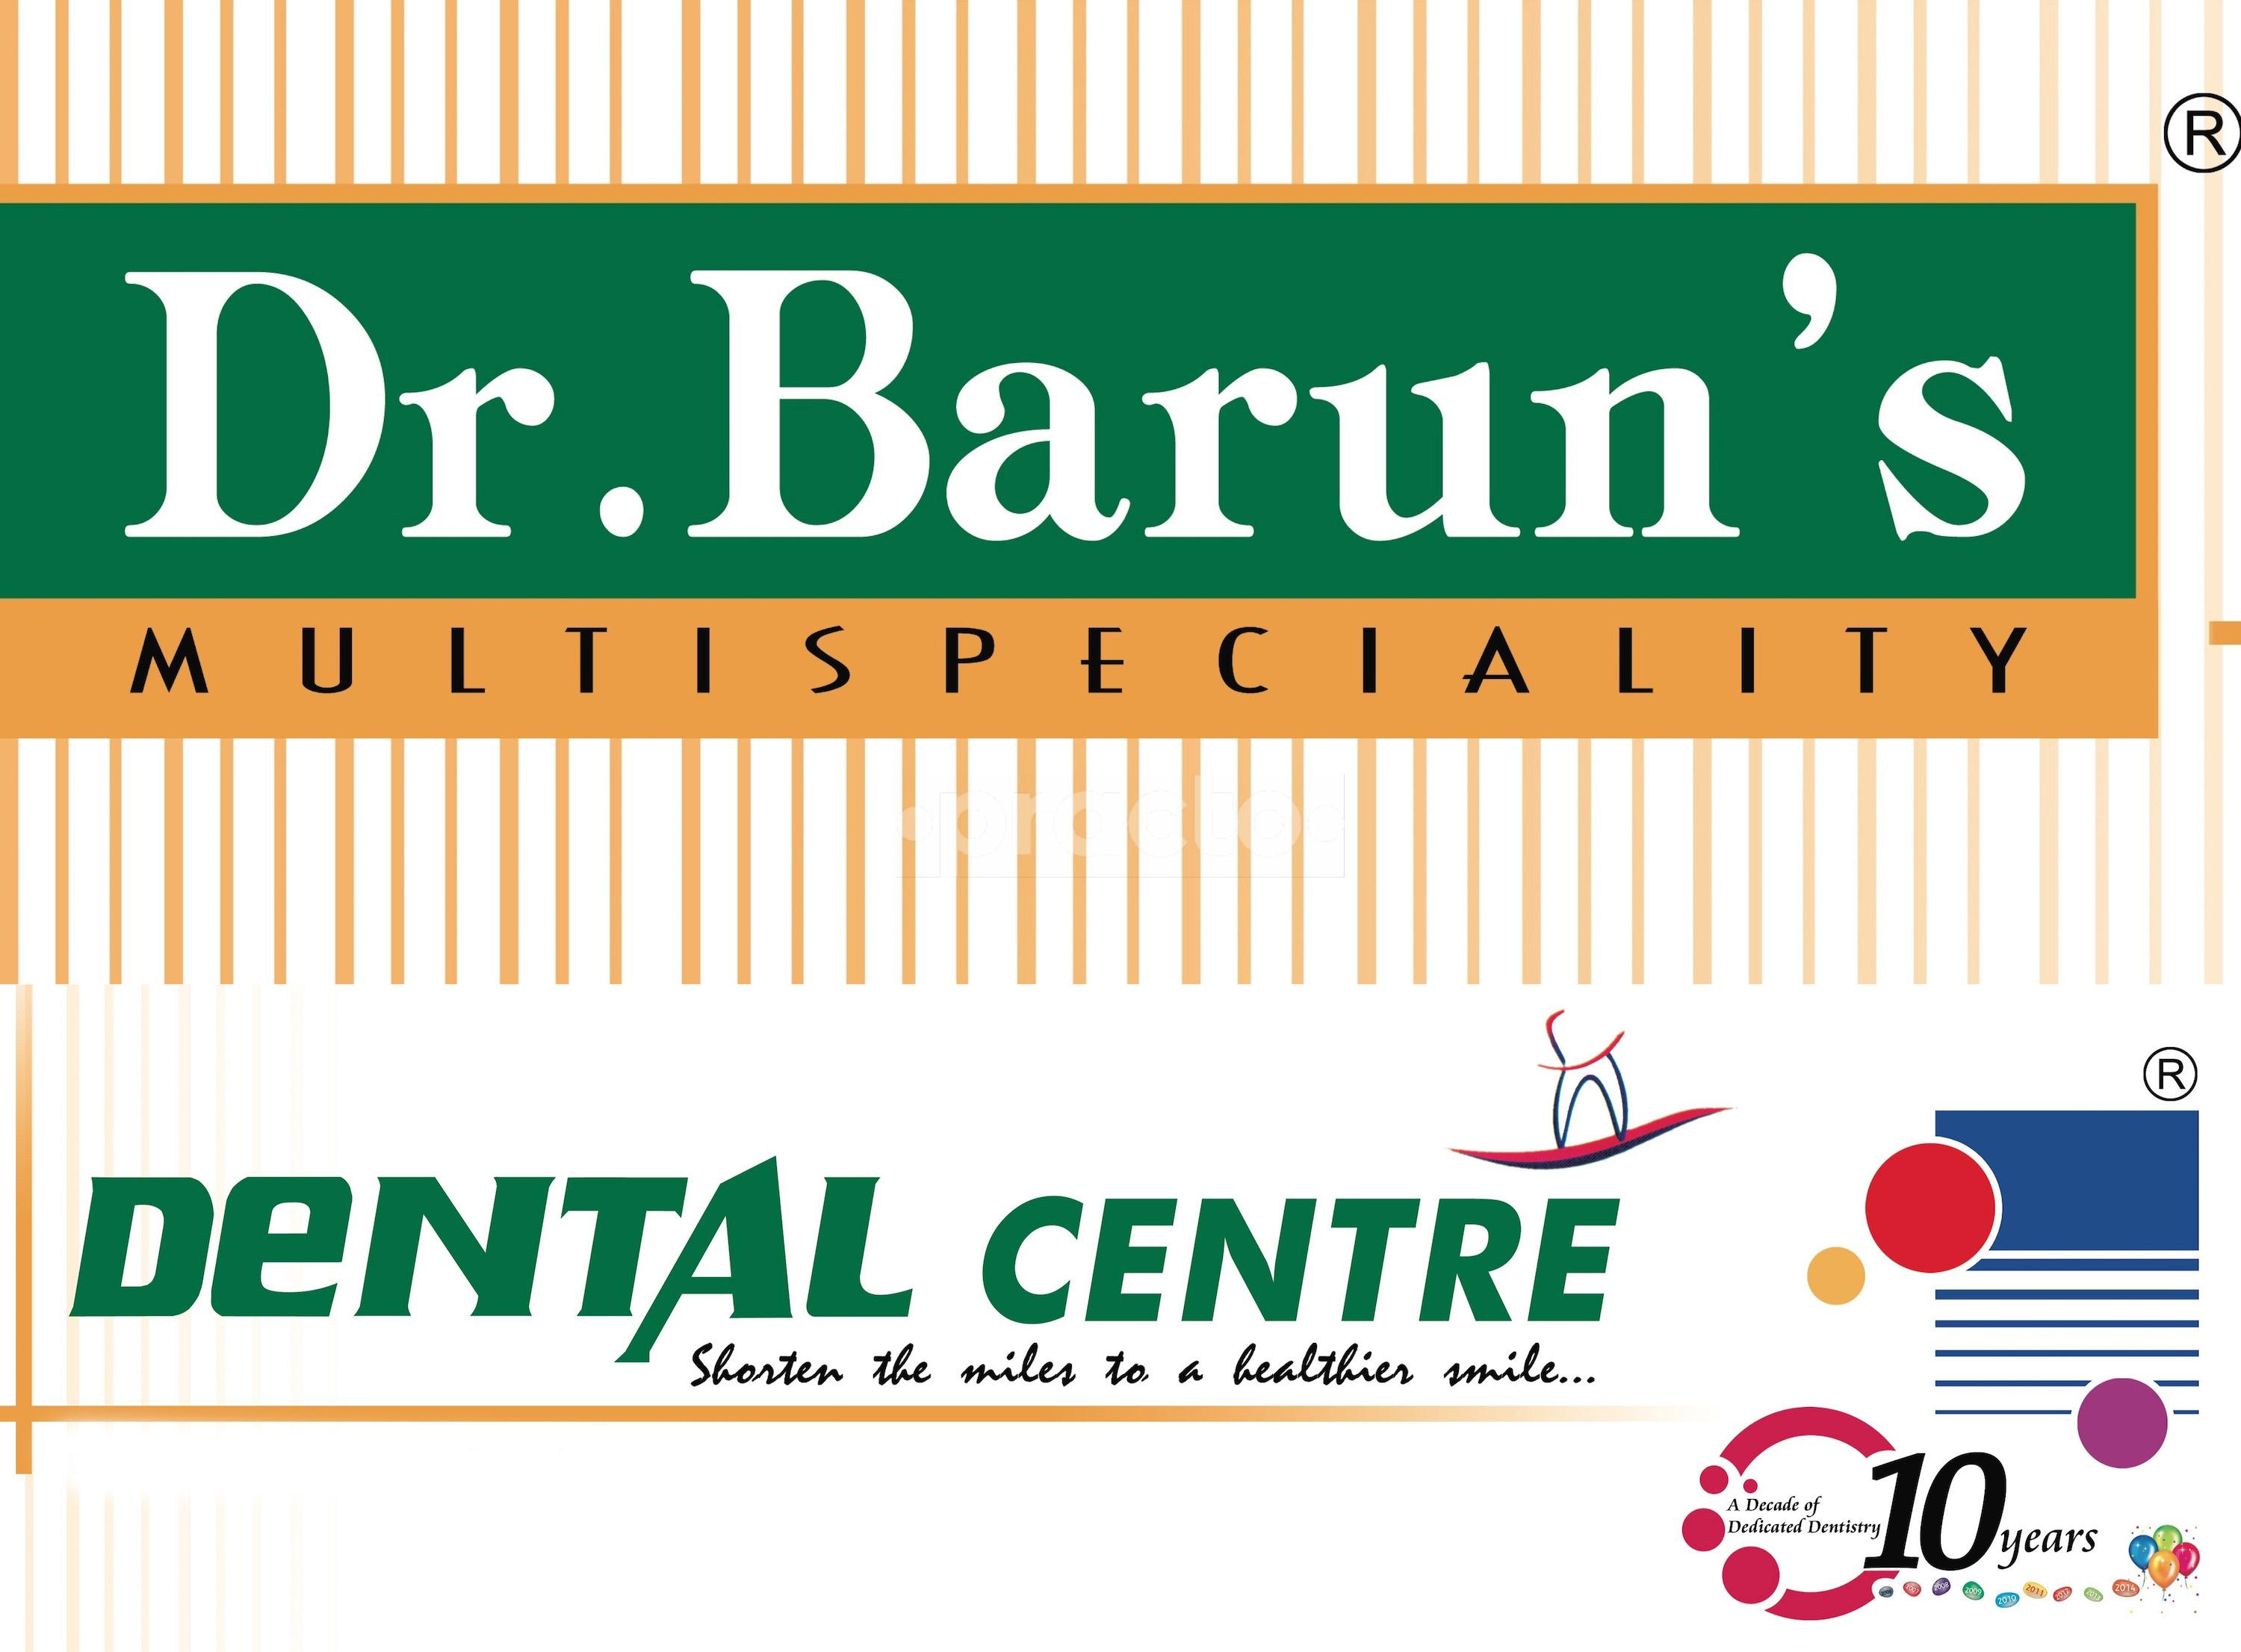 Dr Baruns Dental Centre